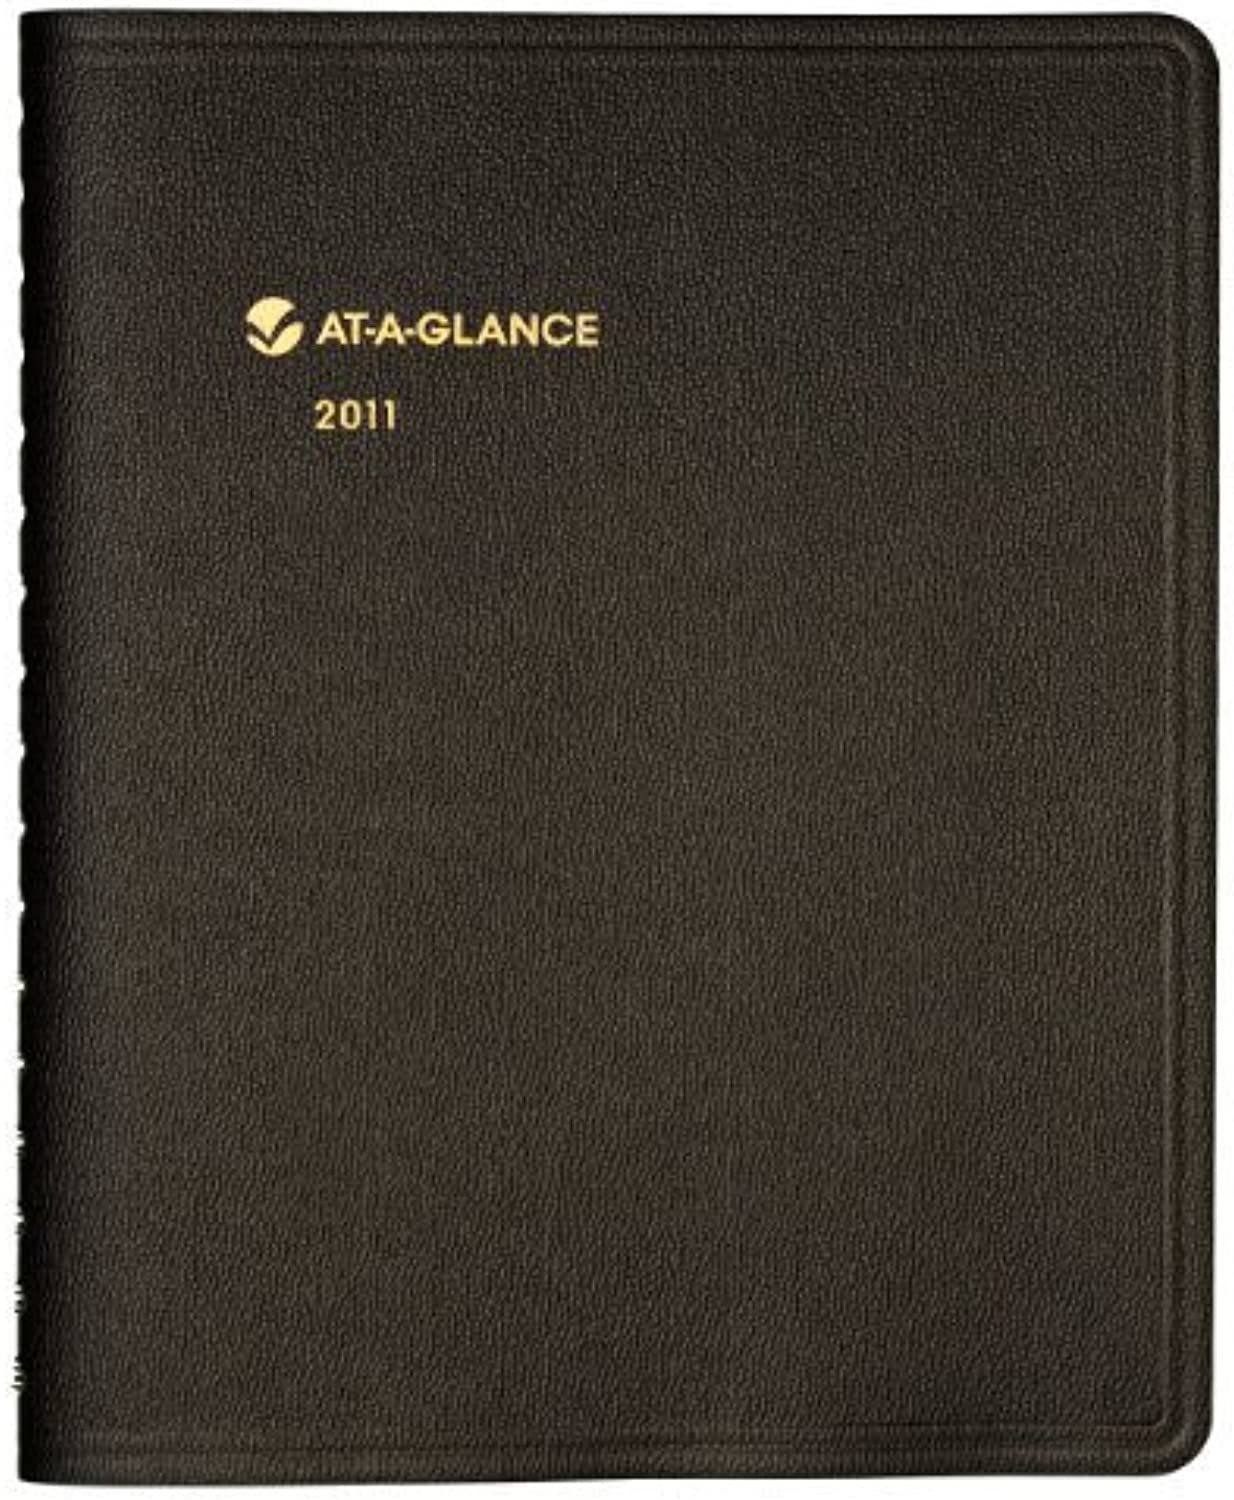 AT-A-GLANCE 7082405 24-Hour 24-Hour 24-Hour Daily Appointment Book, 6 7 8 x 8 3 4, Weiß, 2016 by At-A-Glance B018REI1TW | Ausreichende Versorgung  4e1275